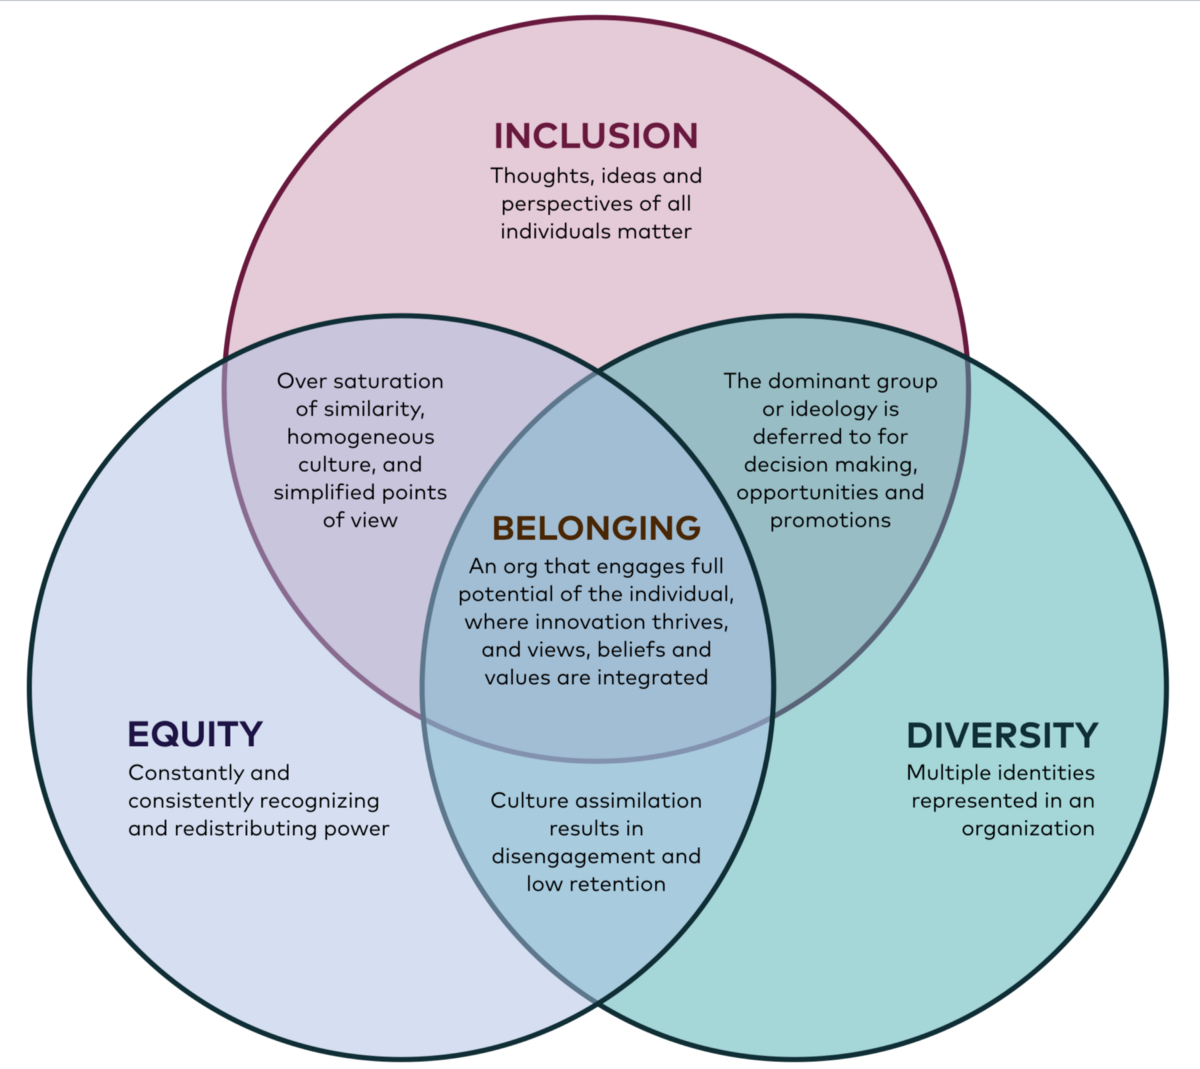 It S 2019 And We Are Still Talking About Equity Diversity And Inclusion Equality And Diversity Equality Diversity And Inclusion Inclusive Education